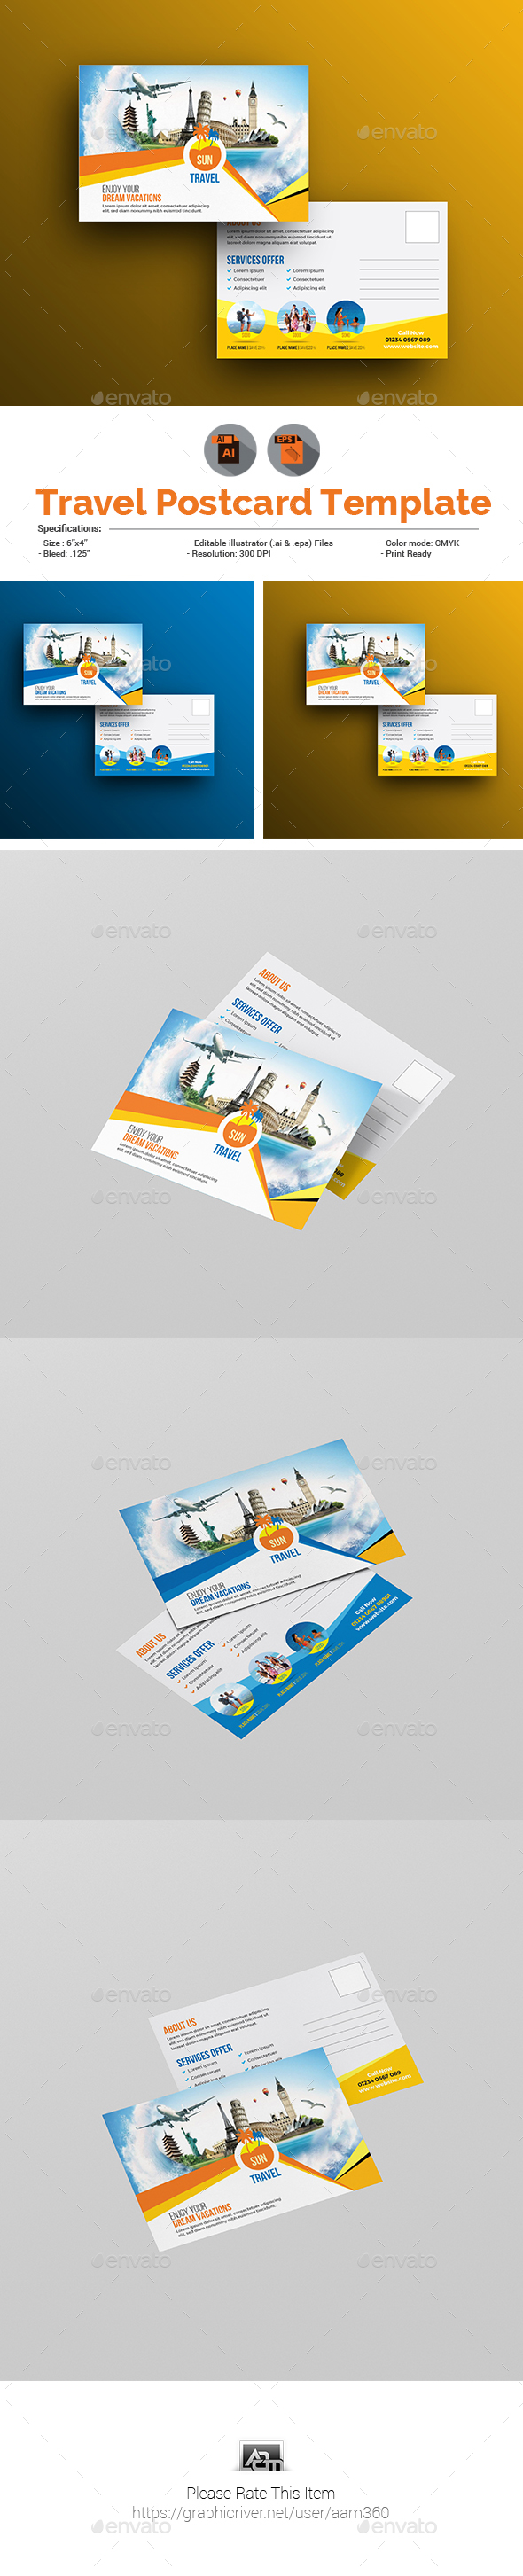 Travel Postcard Template - Cards & Invites Print Templates